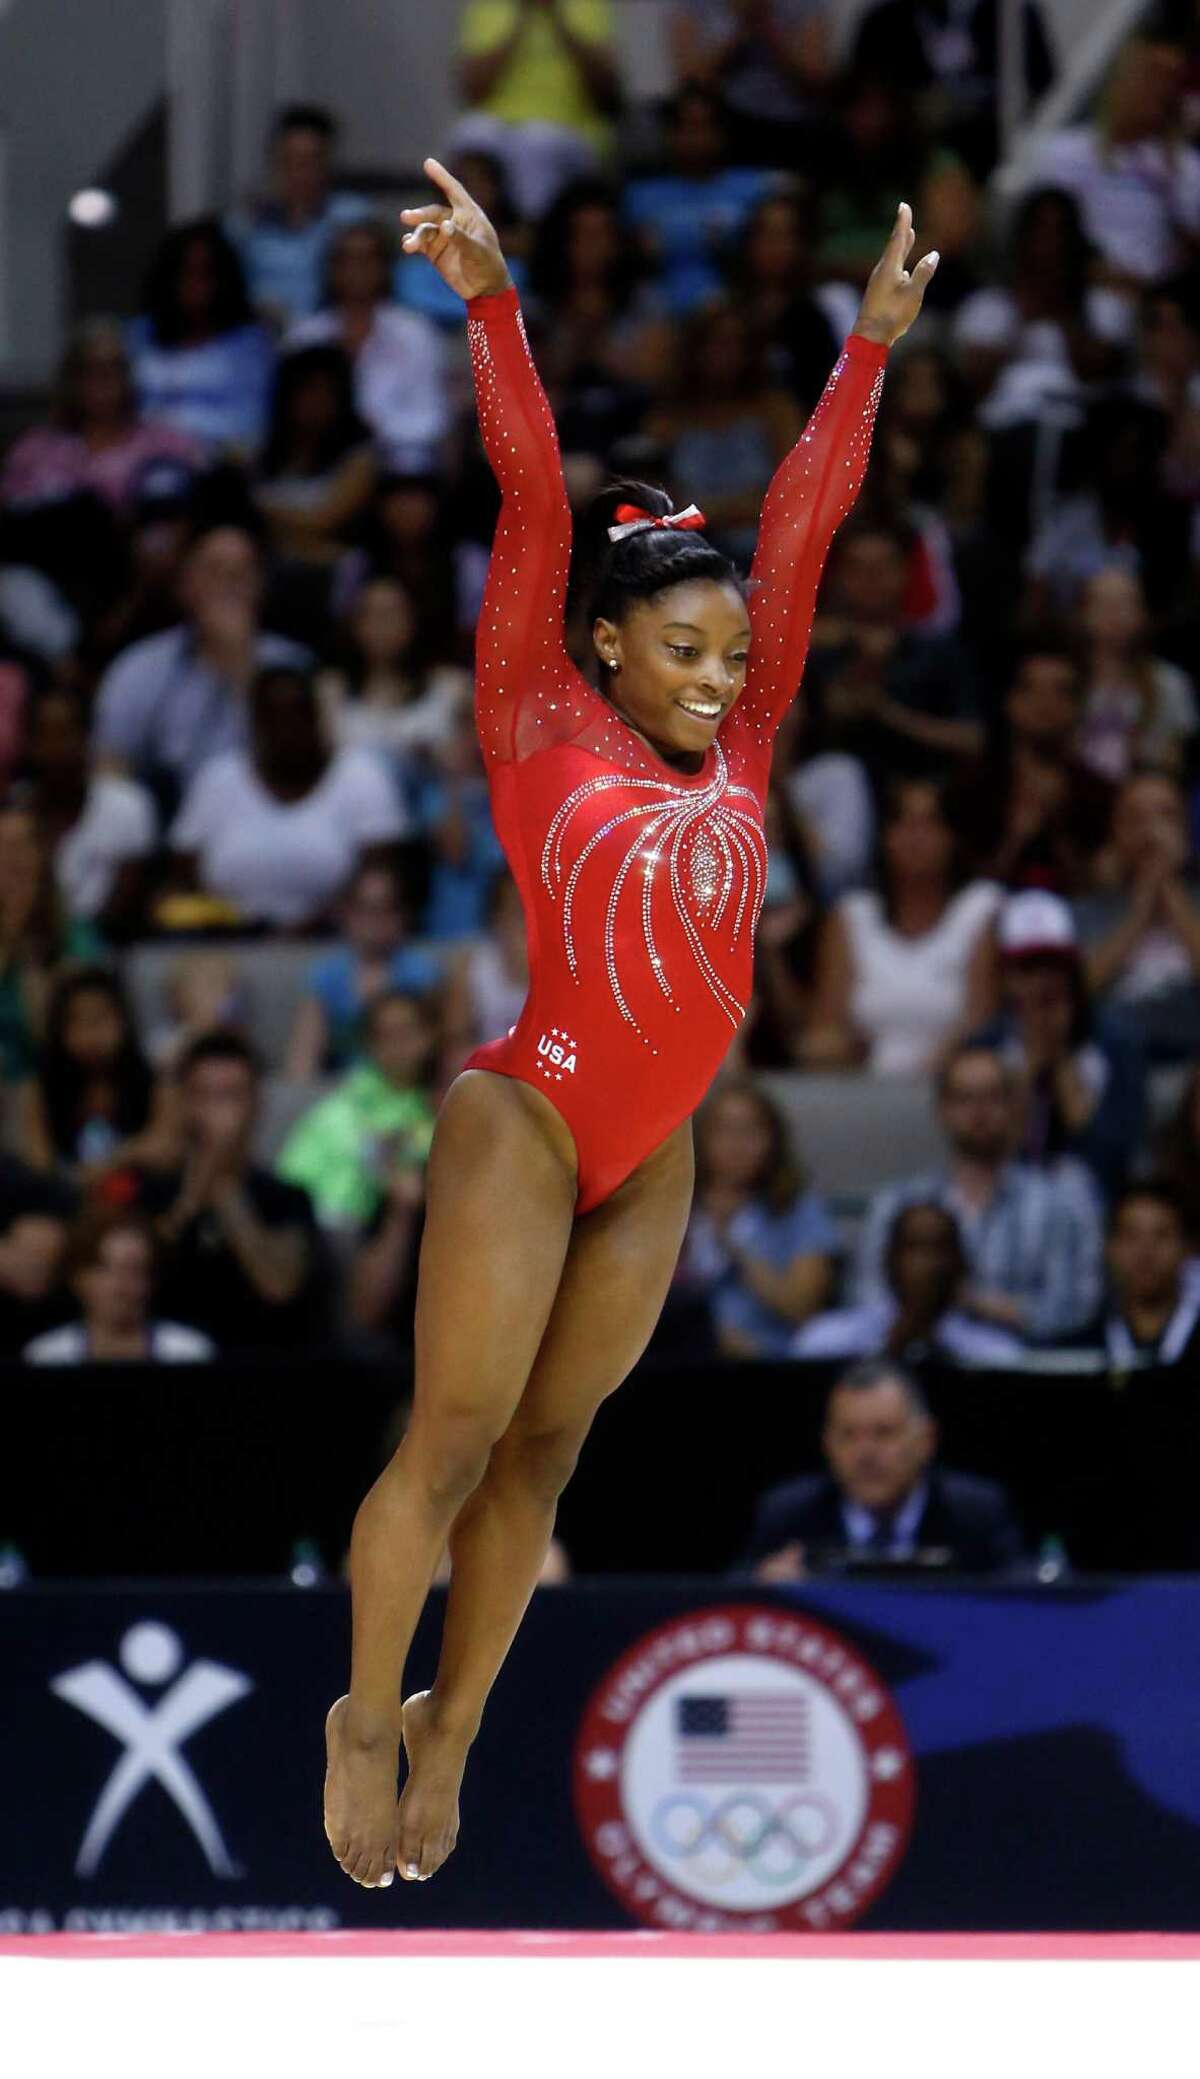 Simone Biles performs her floor routine during Day 2 of 2016 U.S. Olympic Trials for Women's Gymnastics at SAP Center in San Jose, Calif., on Sunday, July 10, 2016.